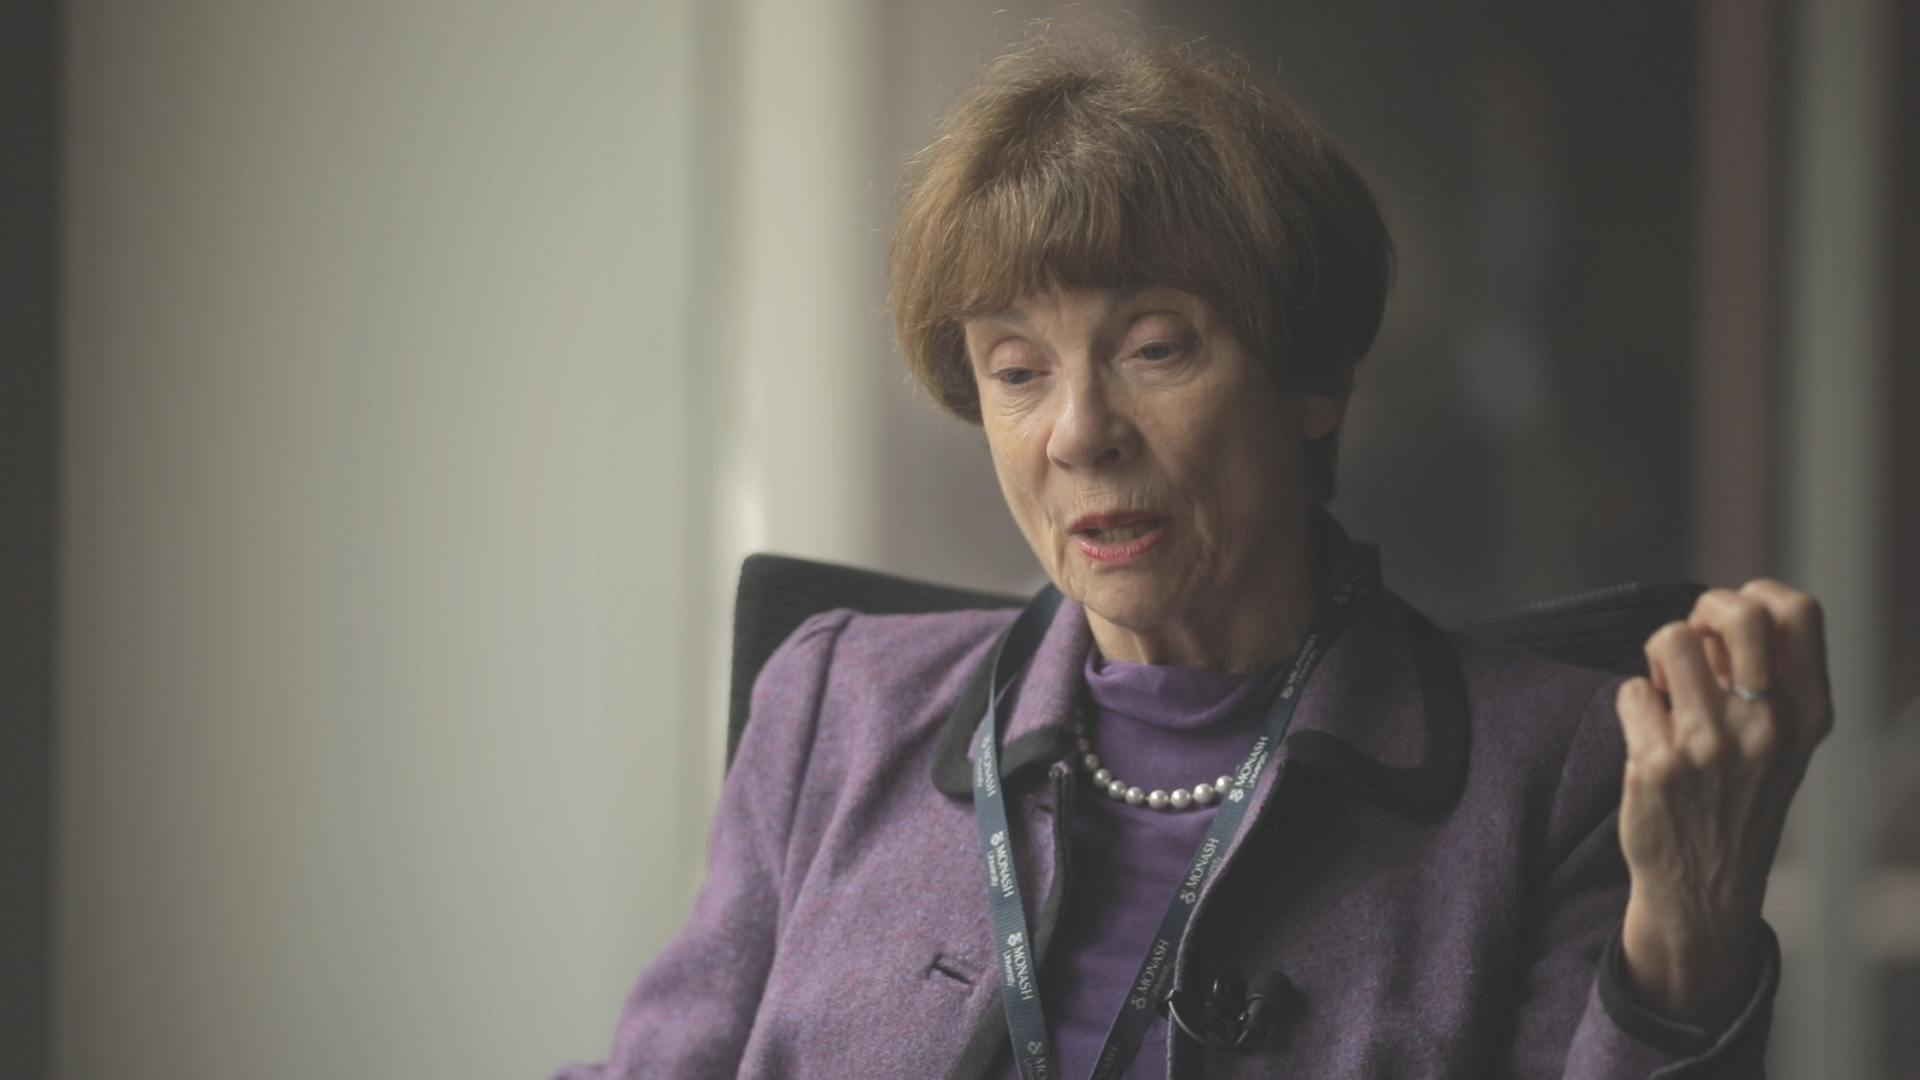 Neave is a short documentary about the Hon. Marcia Ann Neave AO who was: a Court of Appeal judge; an academic; and a law reformist who led two Royal Commissions for women's rights in Australia.  Jeannie Paterson, Associate Professor and Associate Dean of Melbourne Law School, also features.